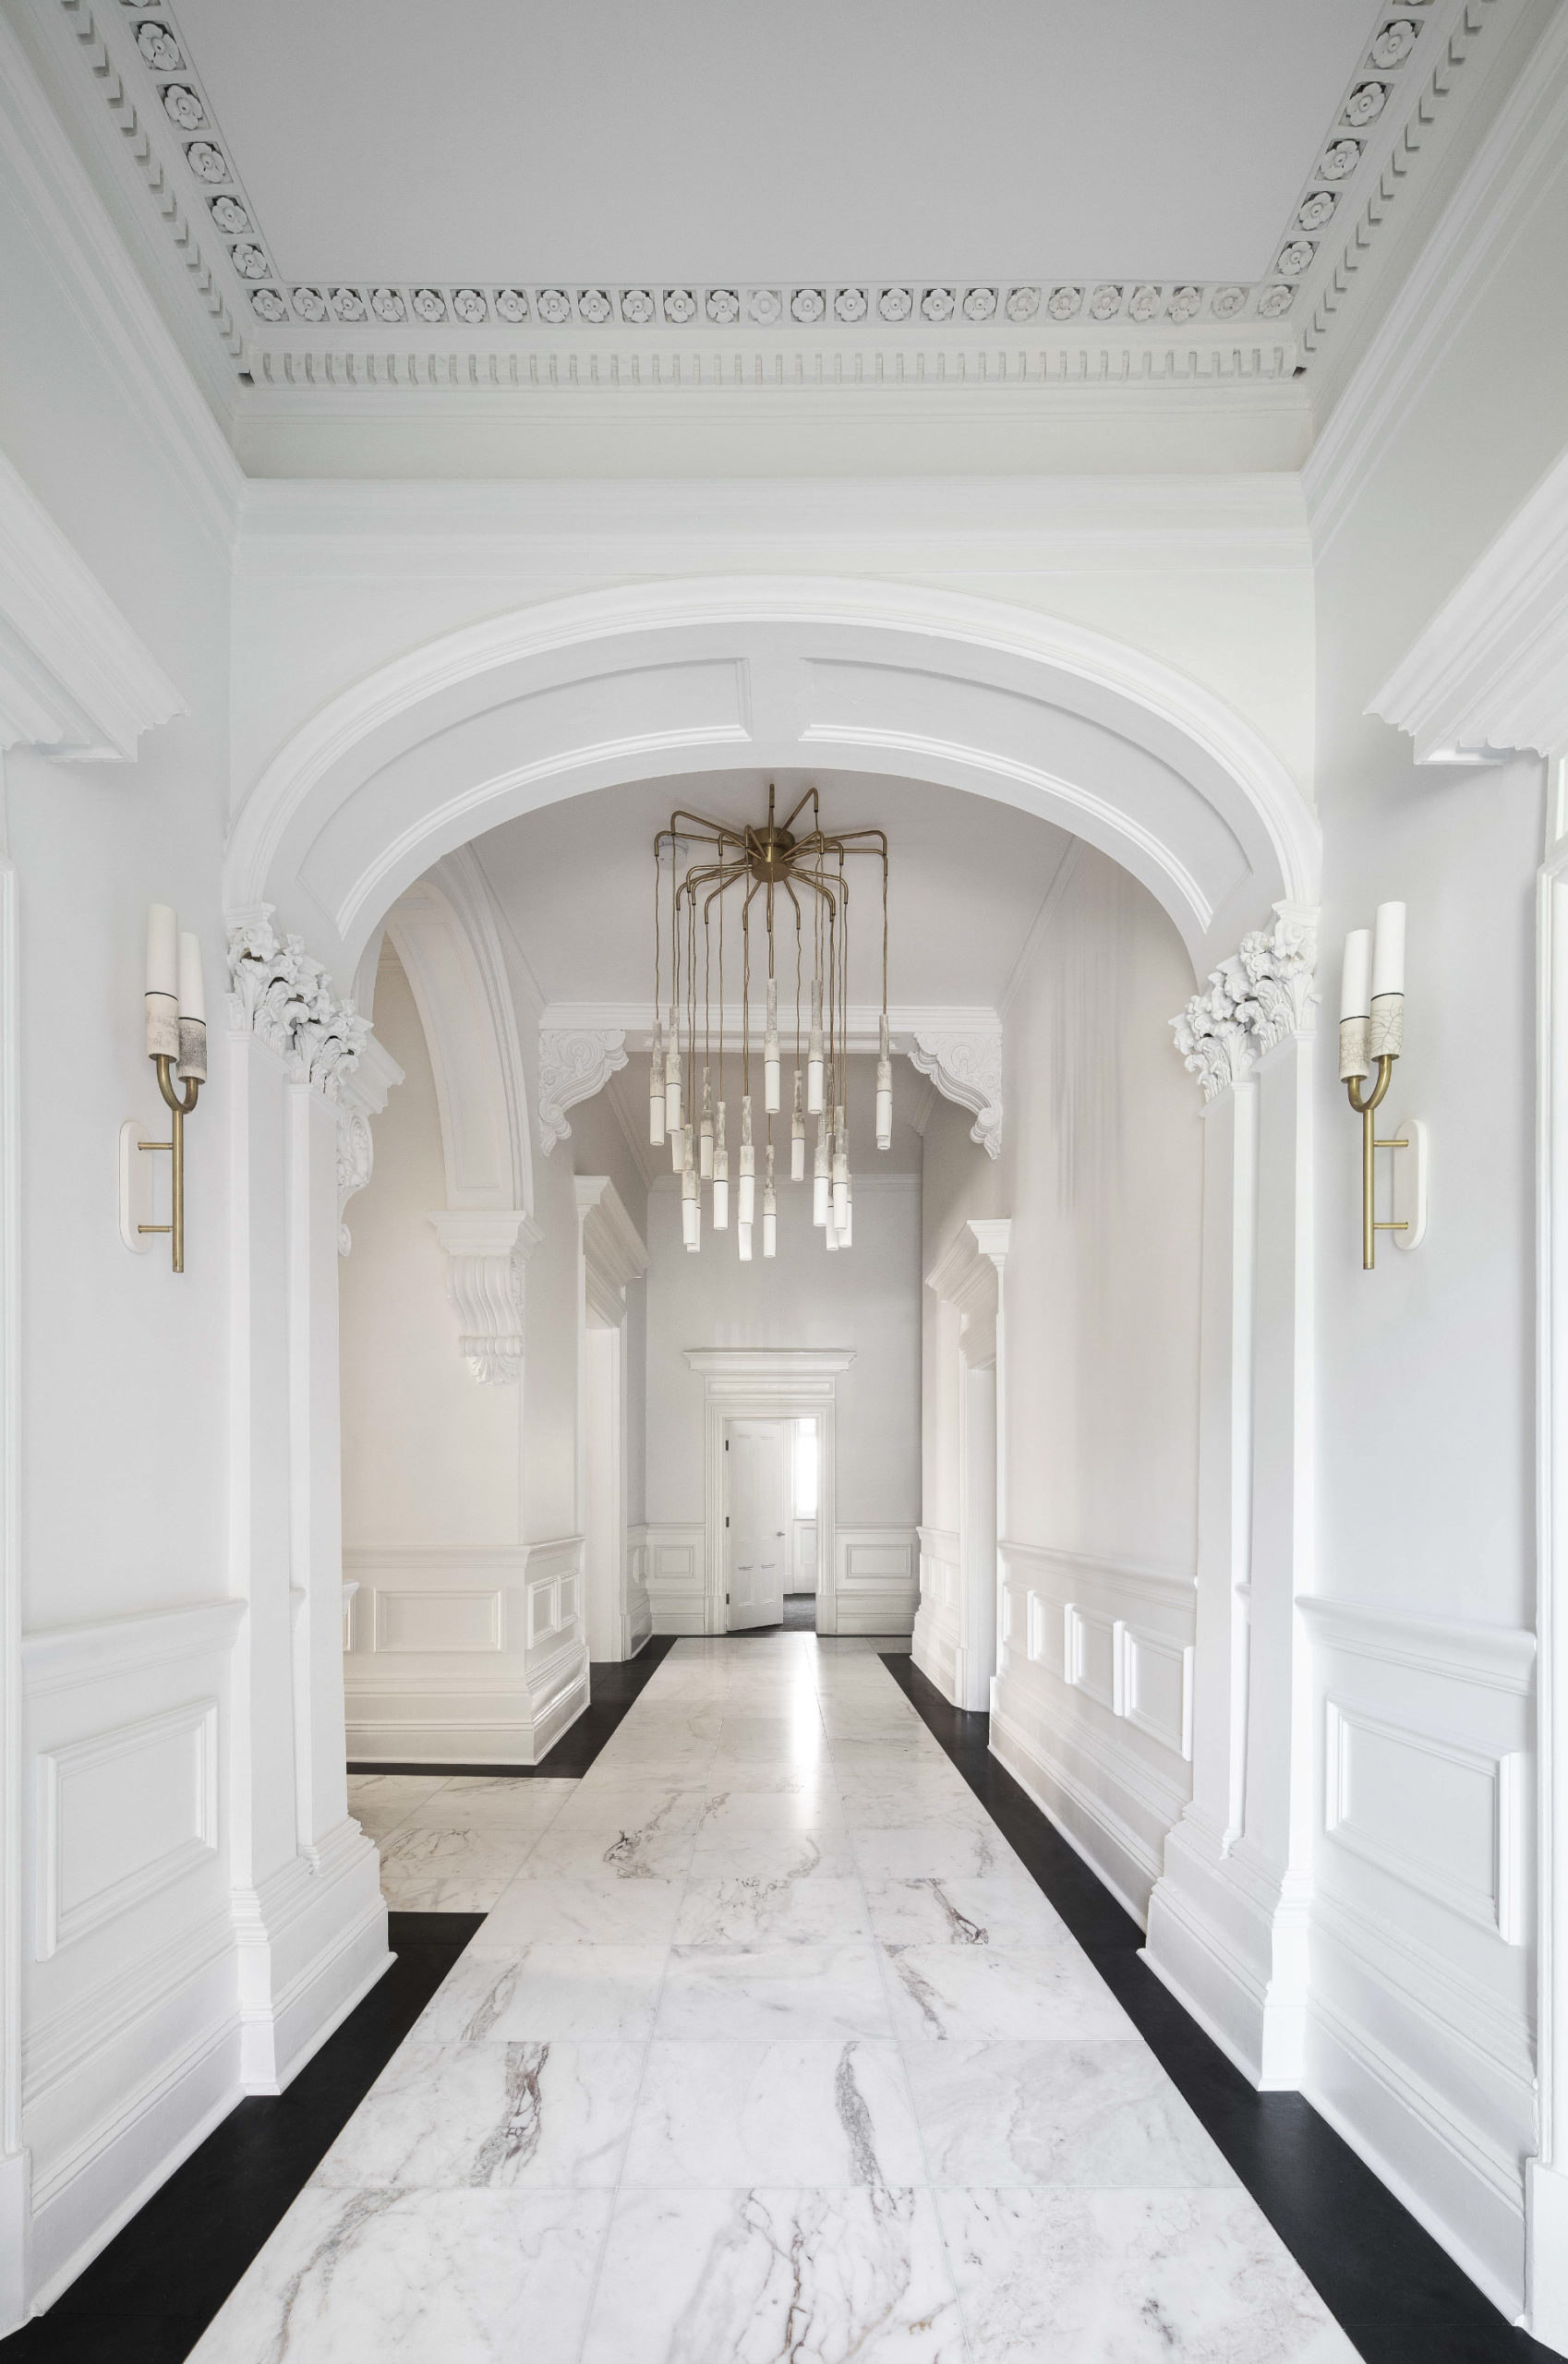 Cera Stribley Architecture Interior Design Albert St interior marble hallway